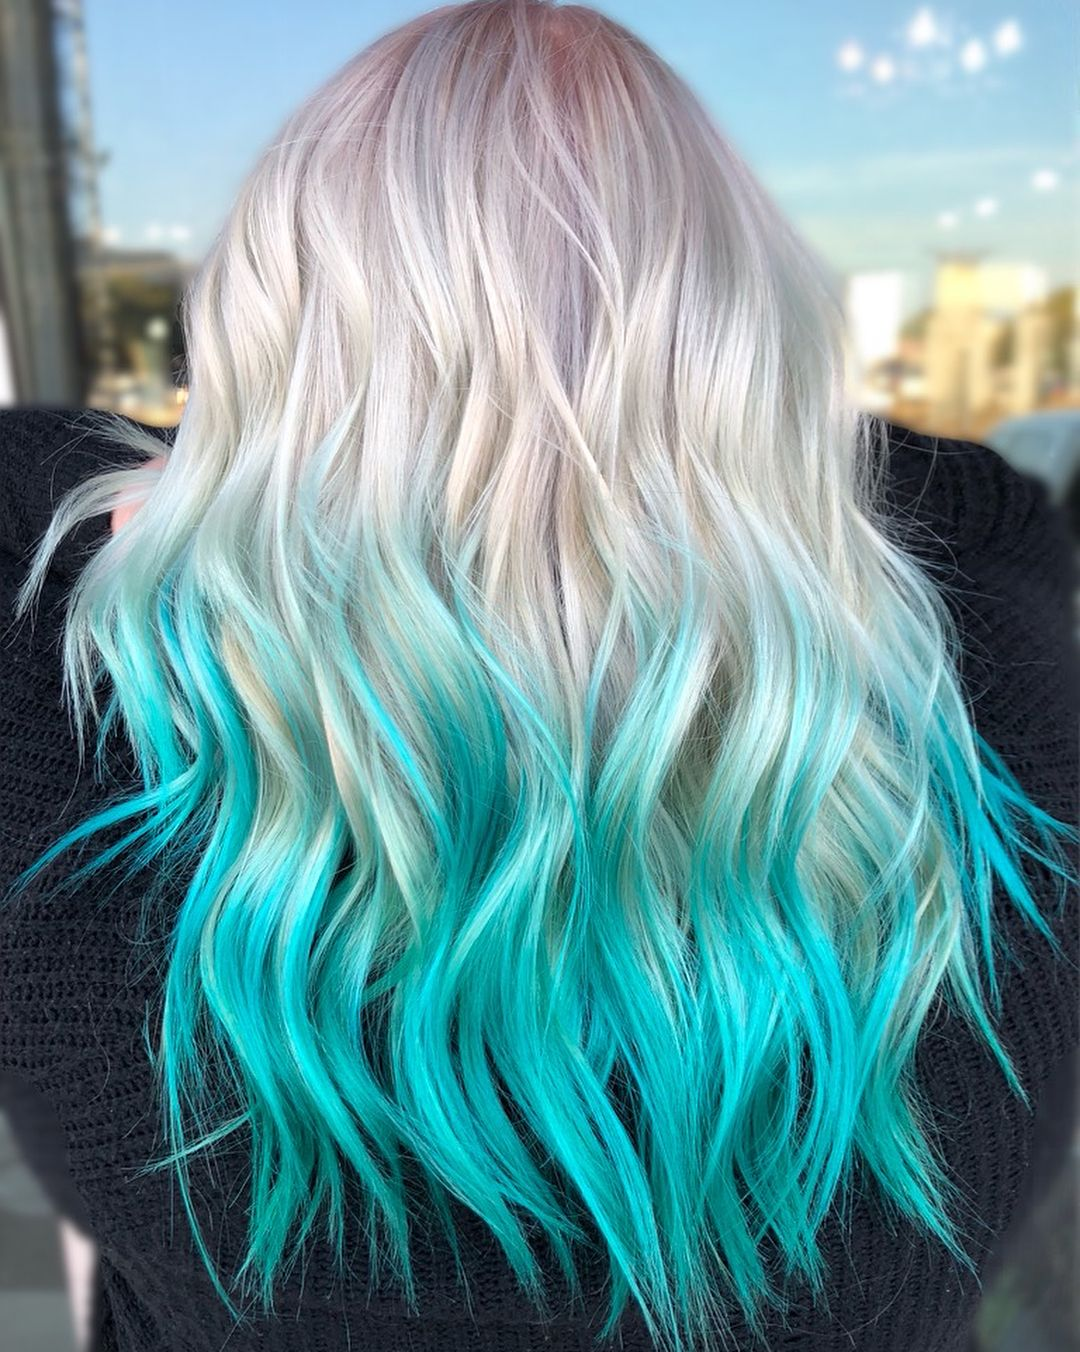 32 cute dyed haircuts to try right now | hairstyles | cool